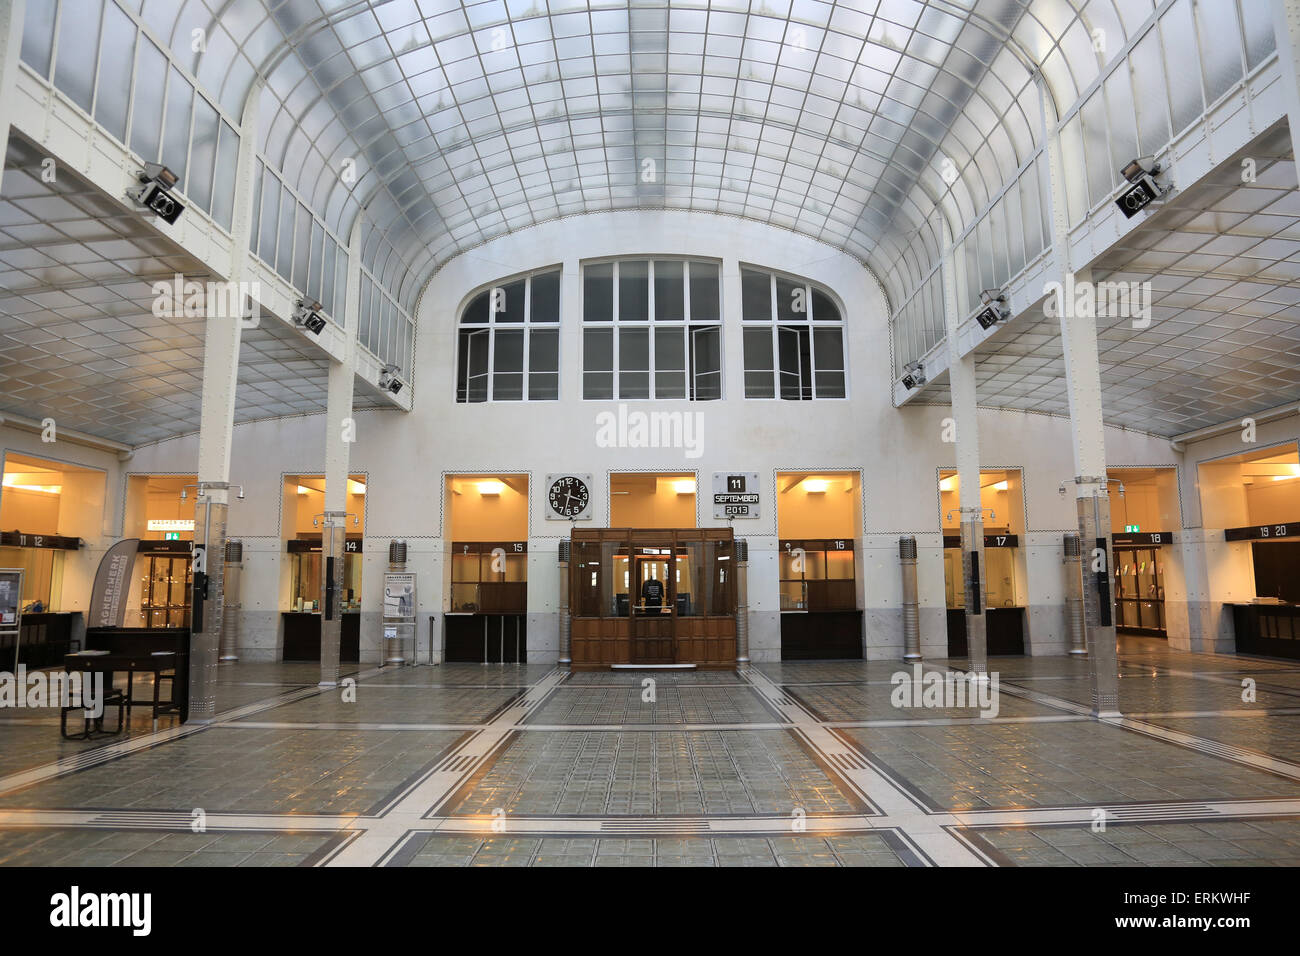 Hall. Postal Office Savings Bank Building by Otto Wagner, Vienna, Austria, Europe - Stock Image